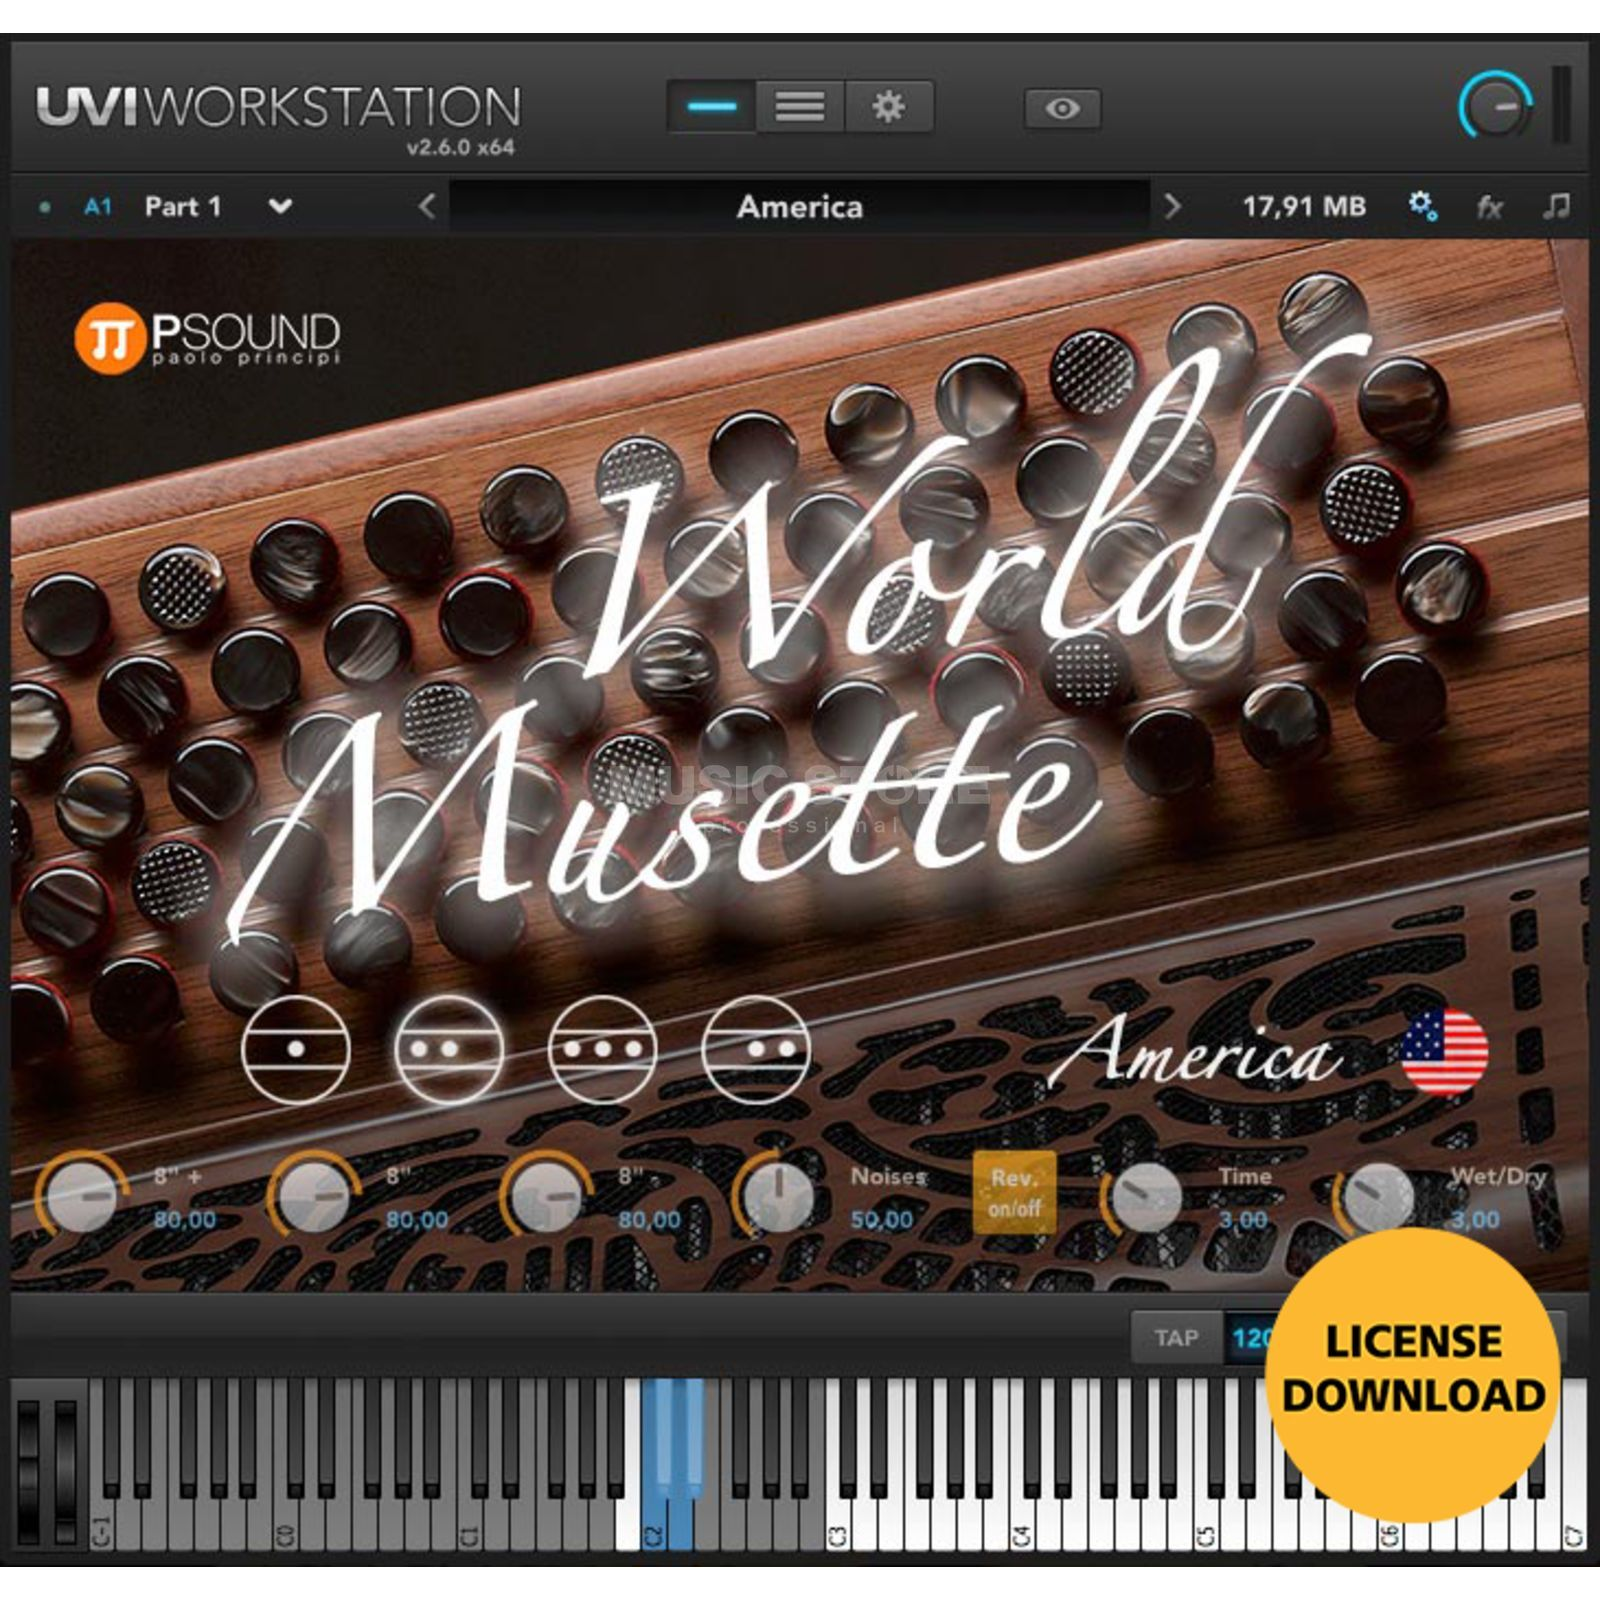 PSOUND PAOLO PRINCIPI World Musette Accordeon License Code Produktbillede